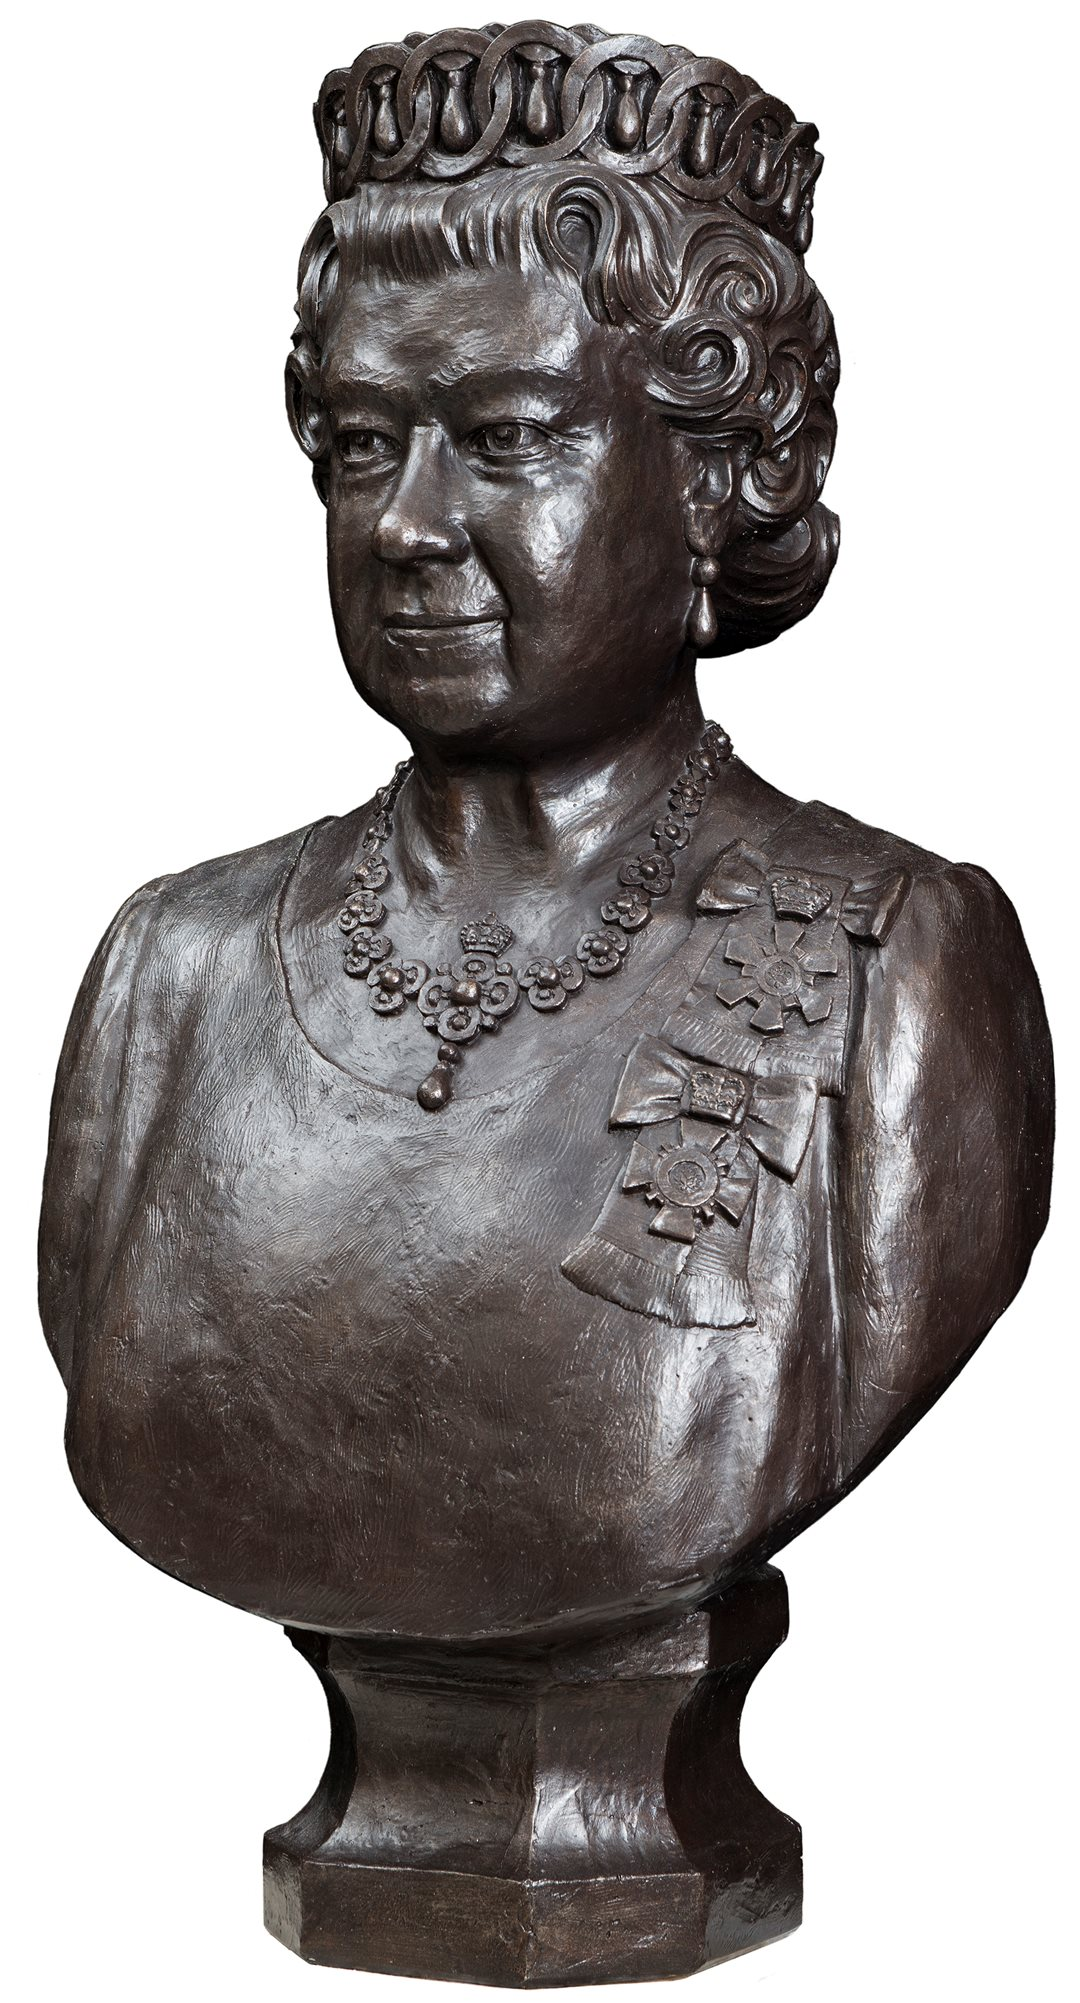 Dominion Sculptor Phil White crafted this bust of Queen Elizabeth II in 2012, the Queen's Diamond Jubilee year.